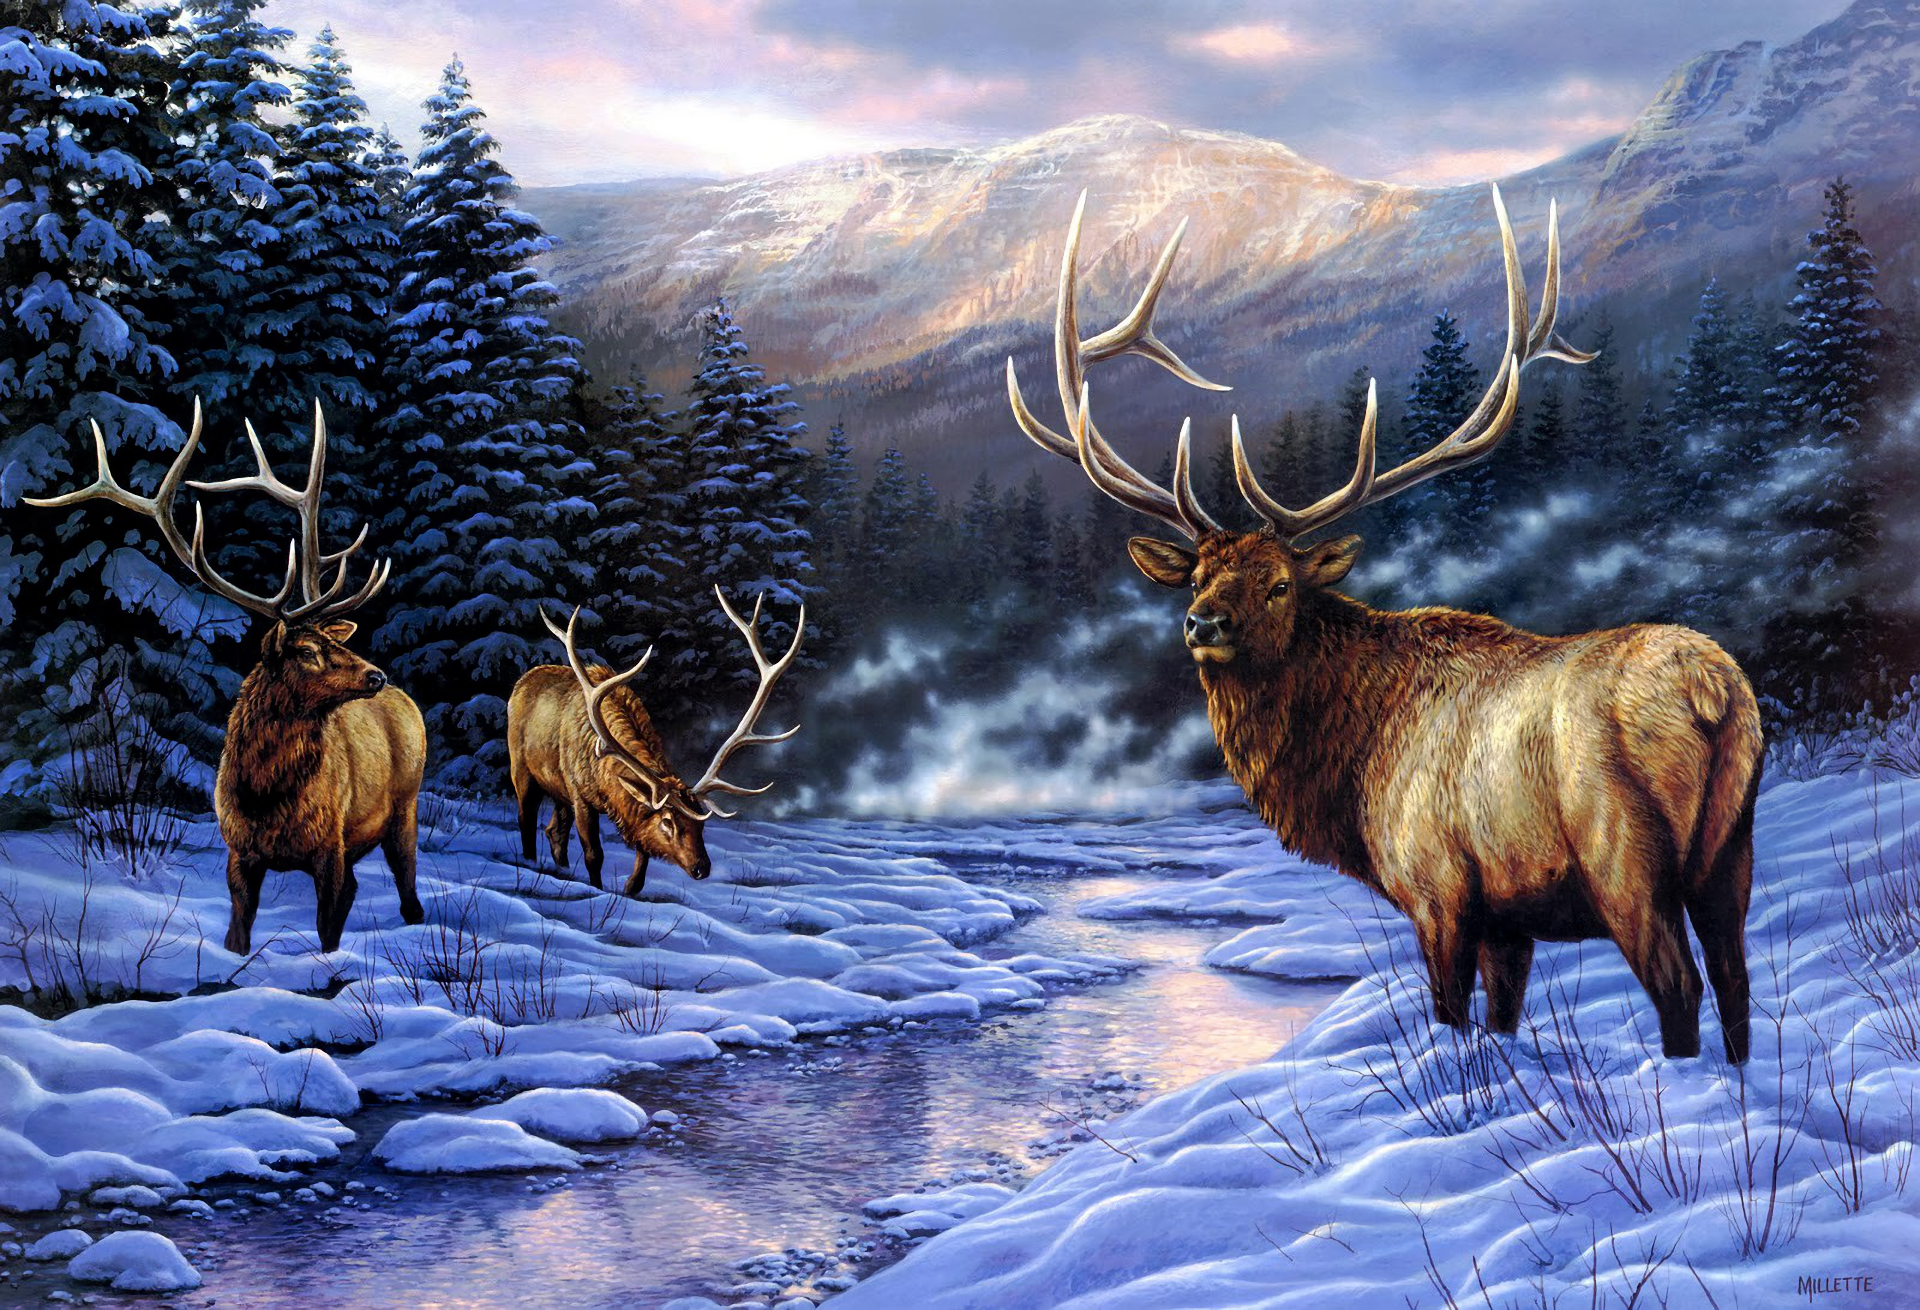 Artistic Buck Deer Forest Painting River Snow Tree Winter 1920x1310